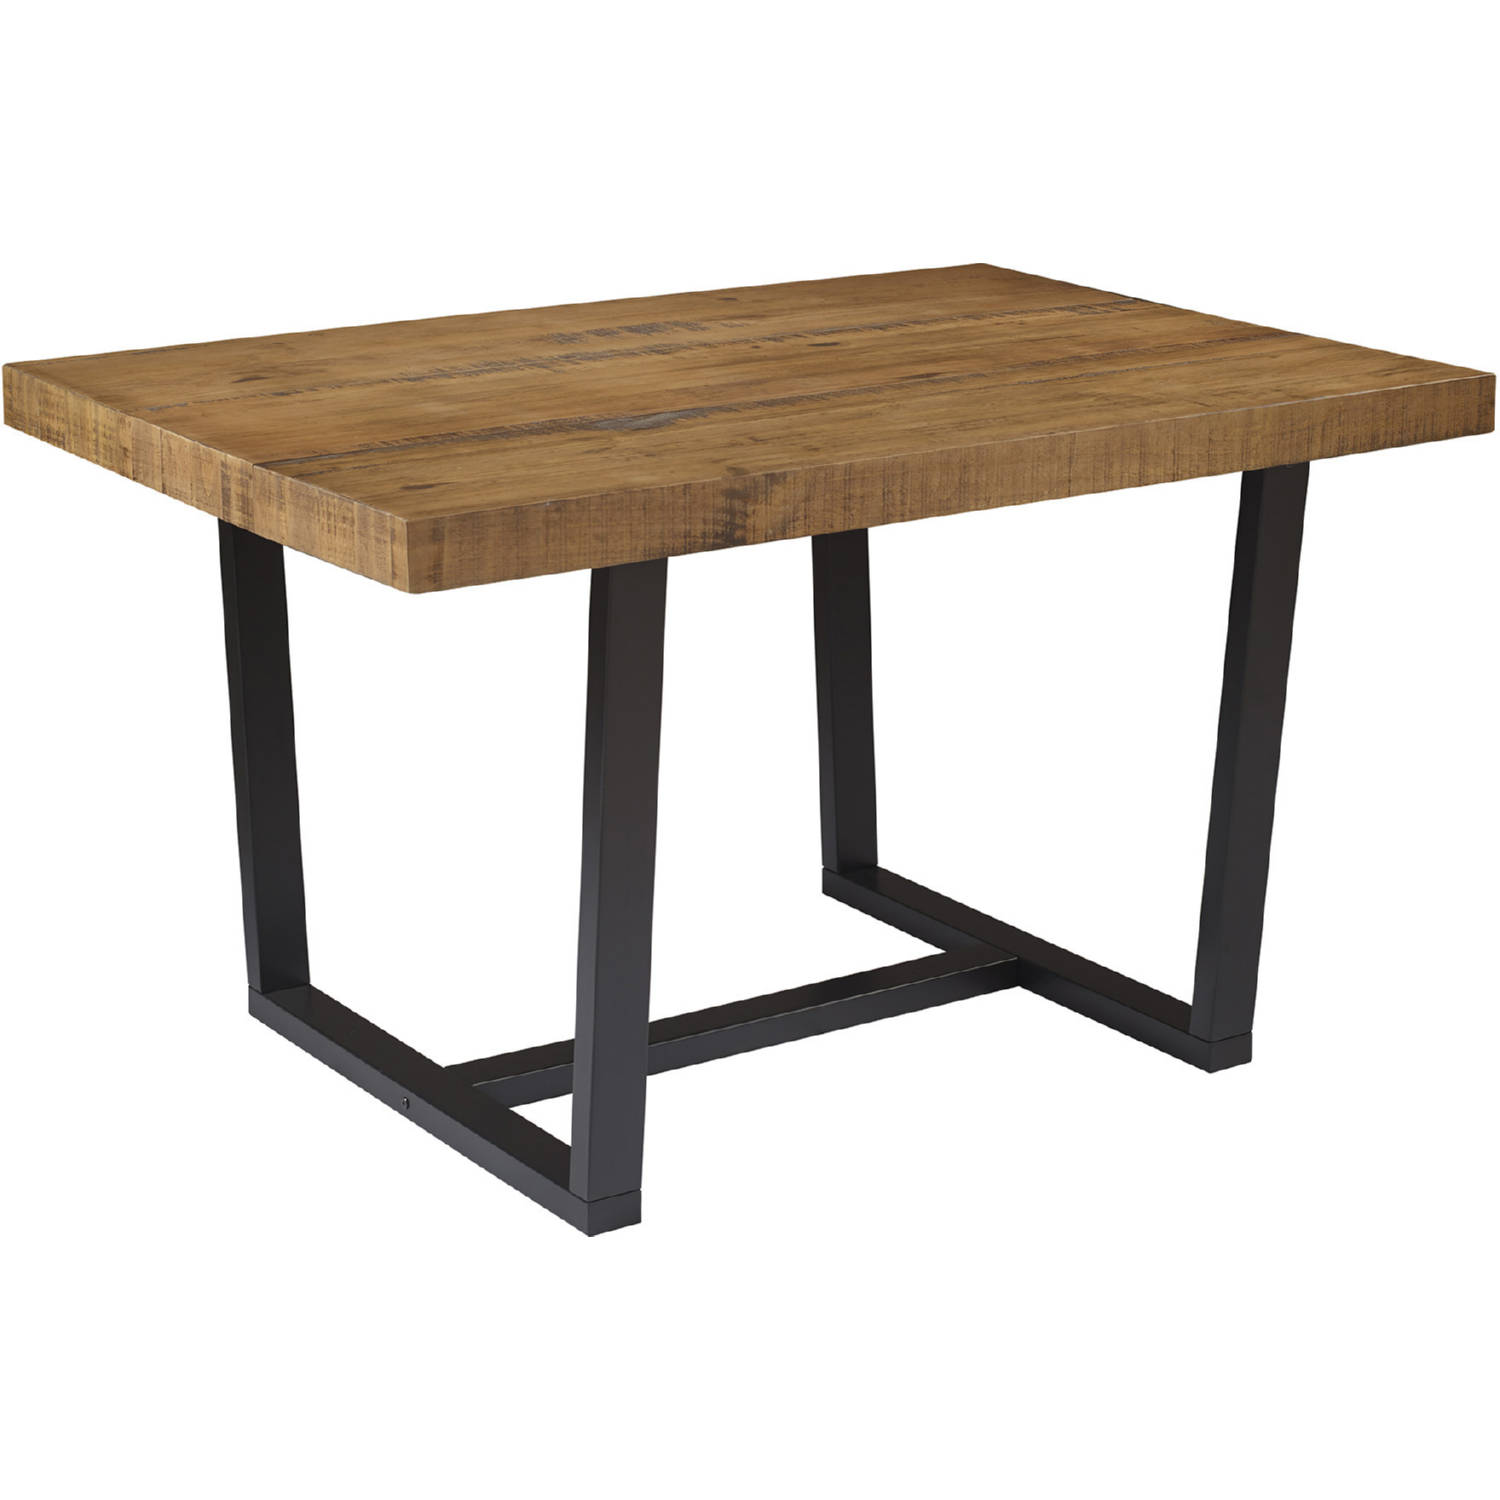 Distressed Solid Wood Dining Table